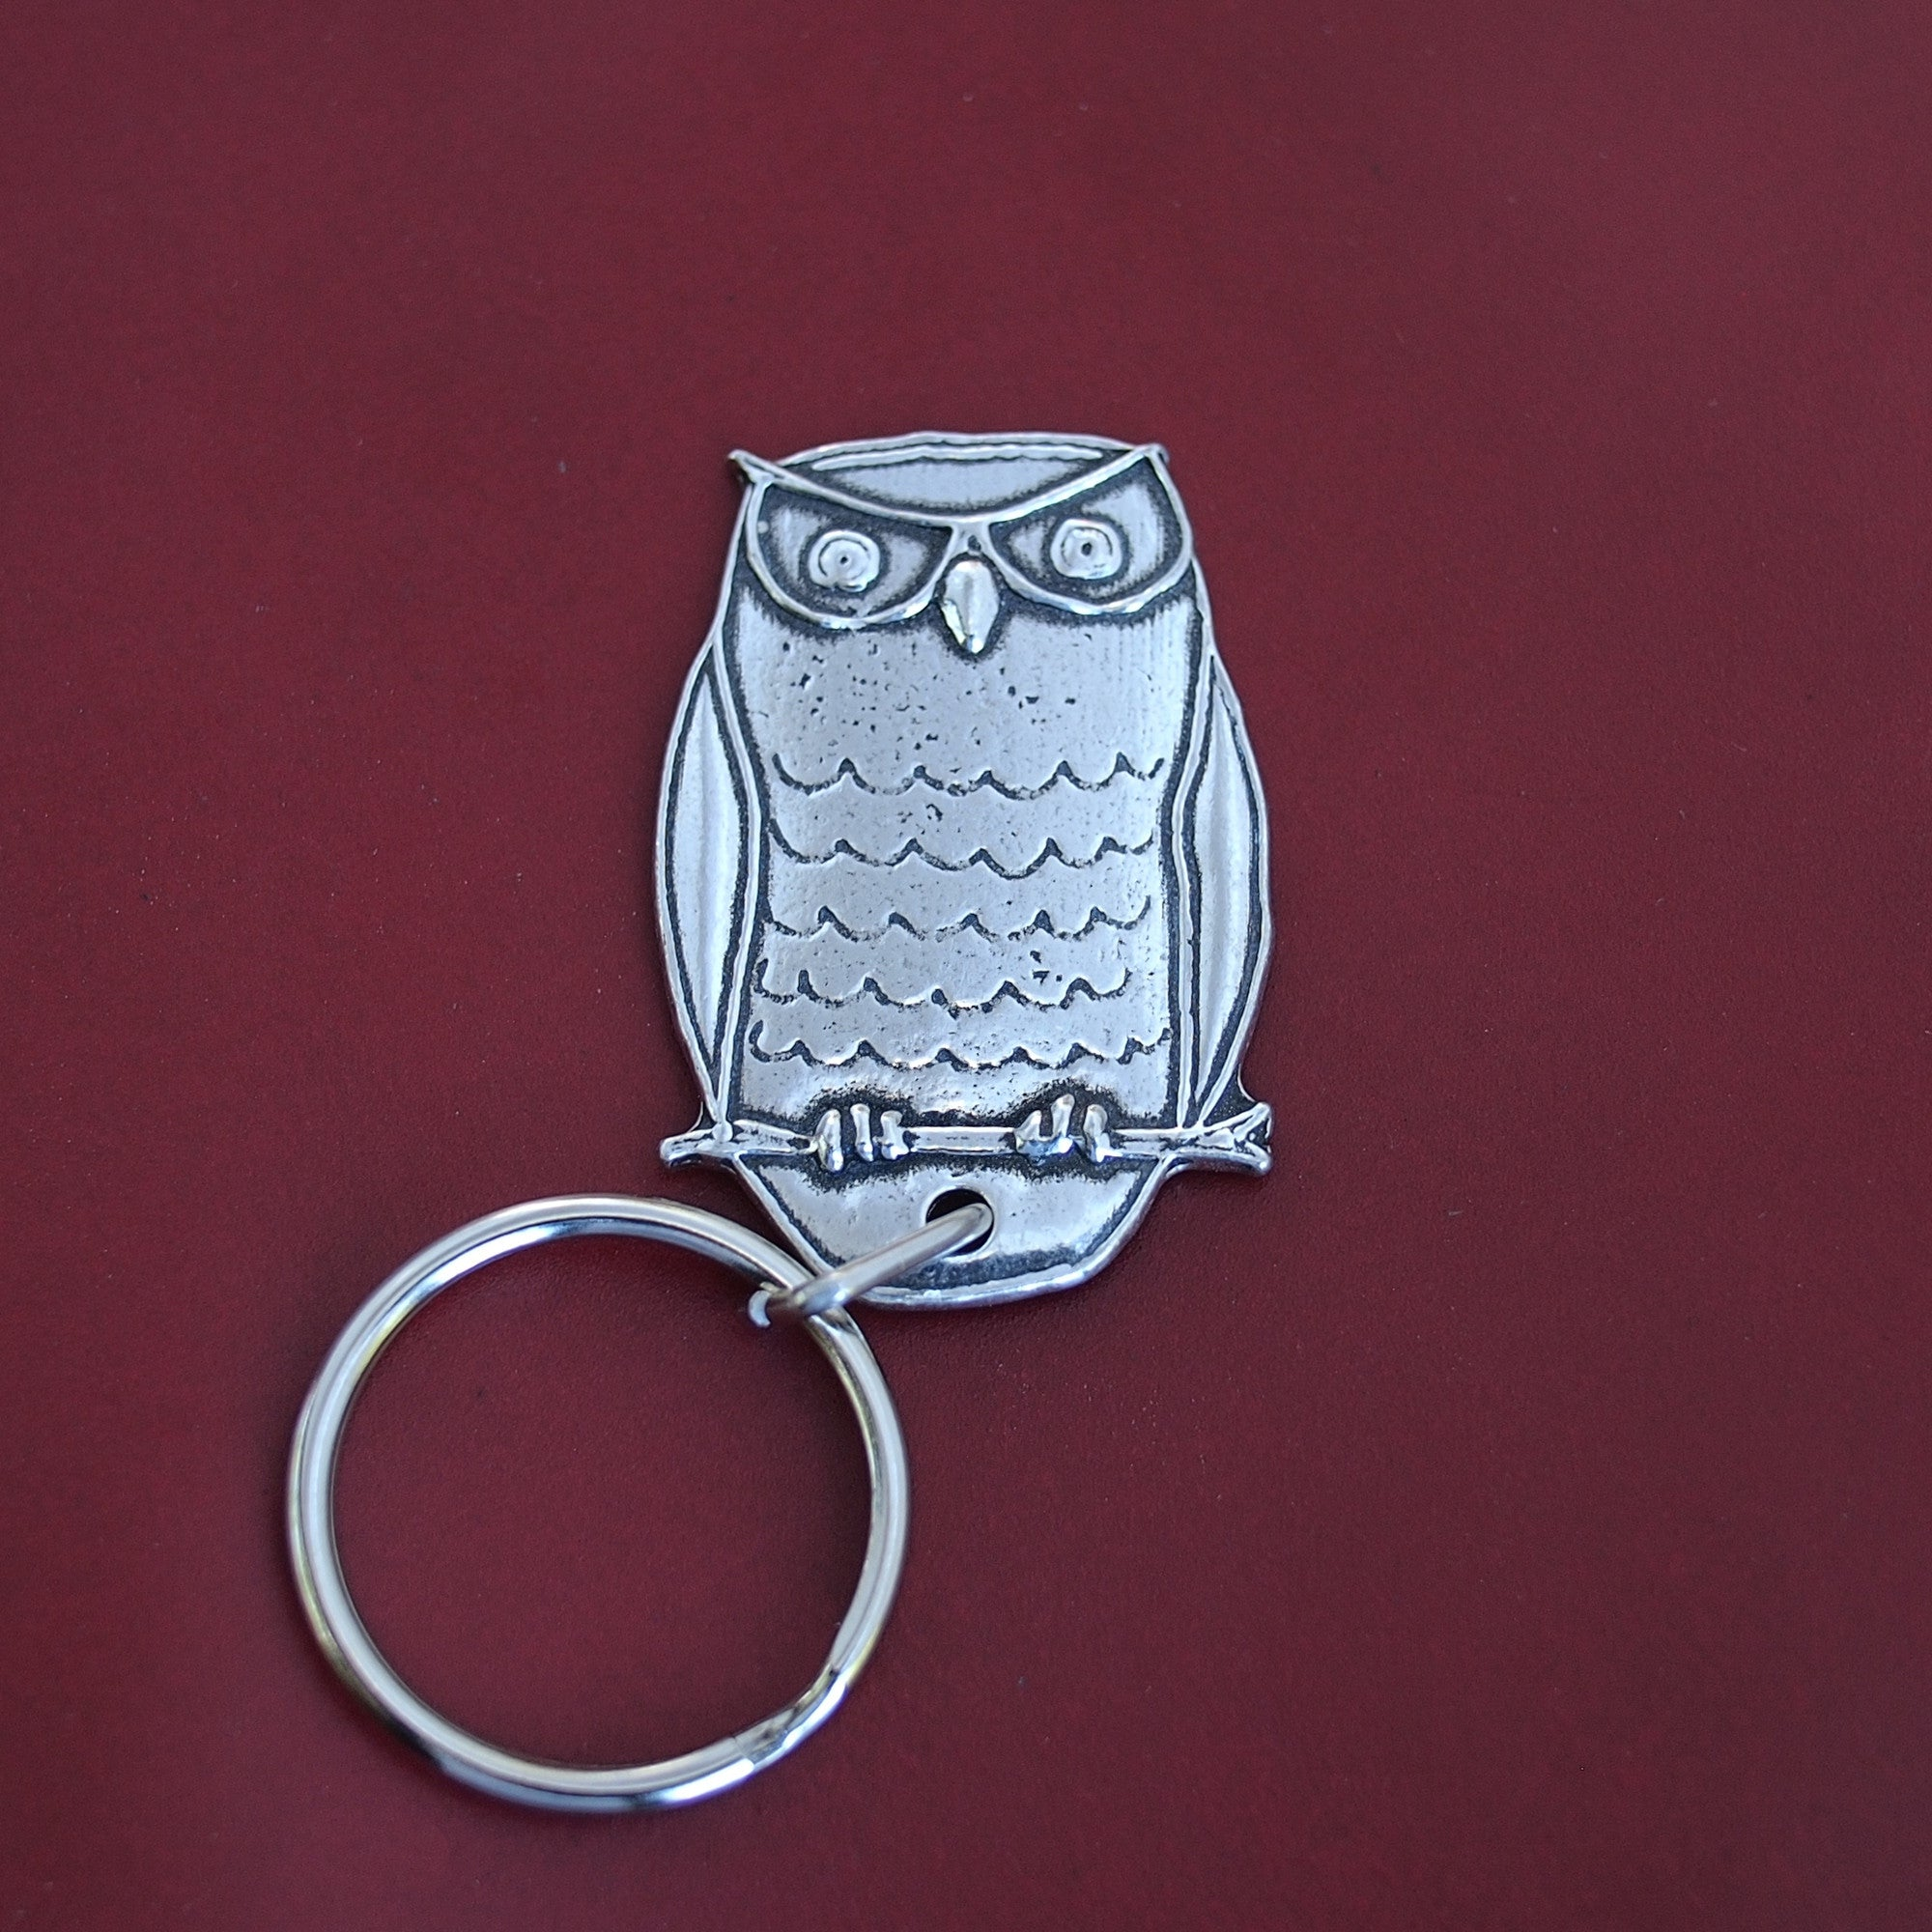 Cornelius the Owl Key Chain